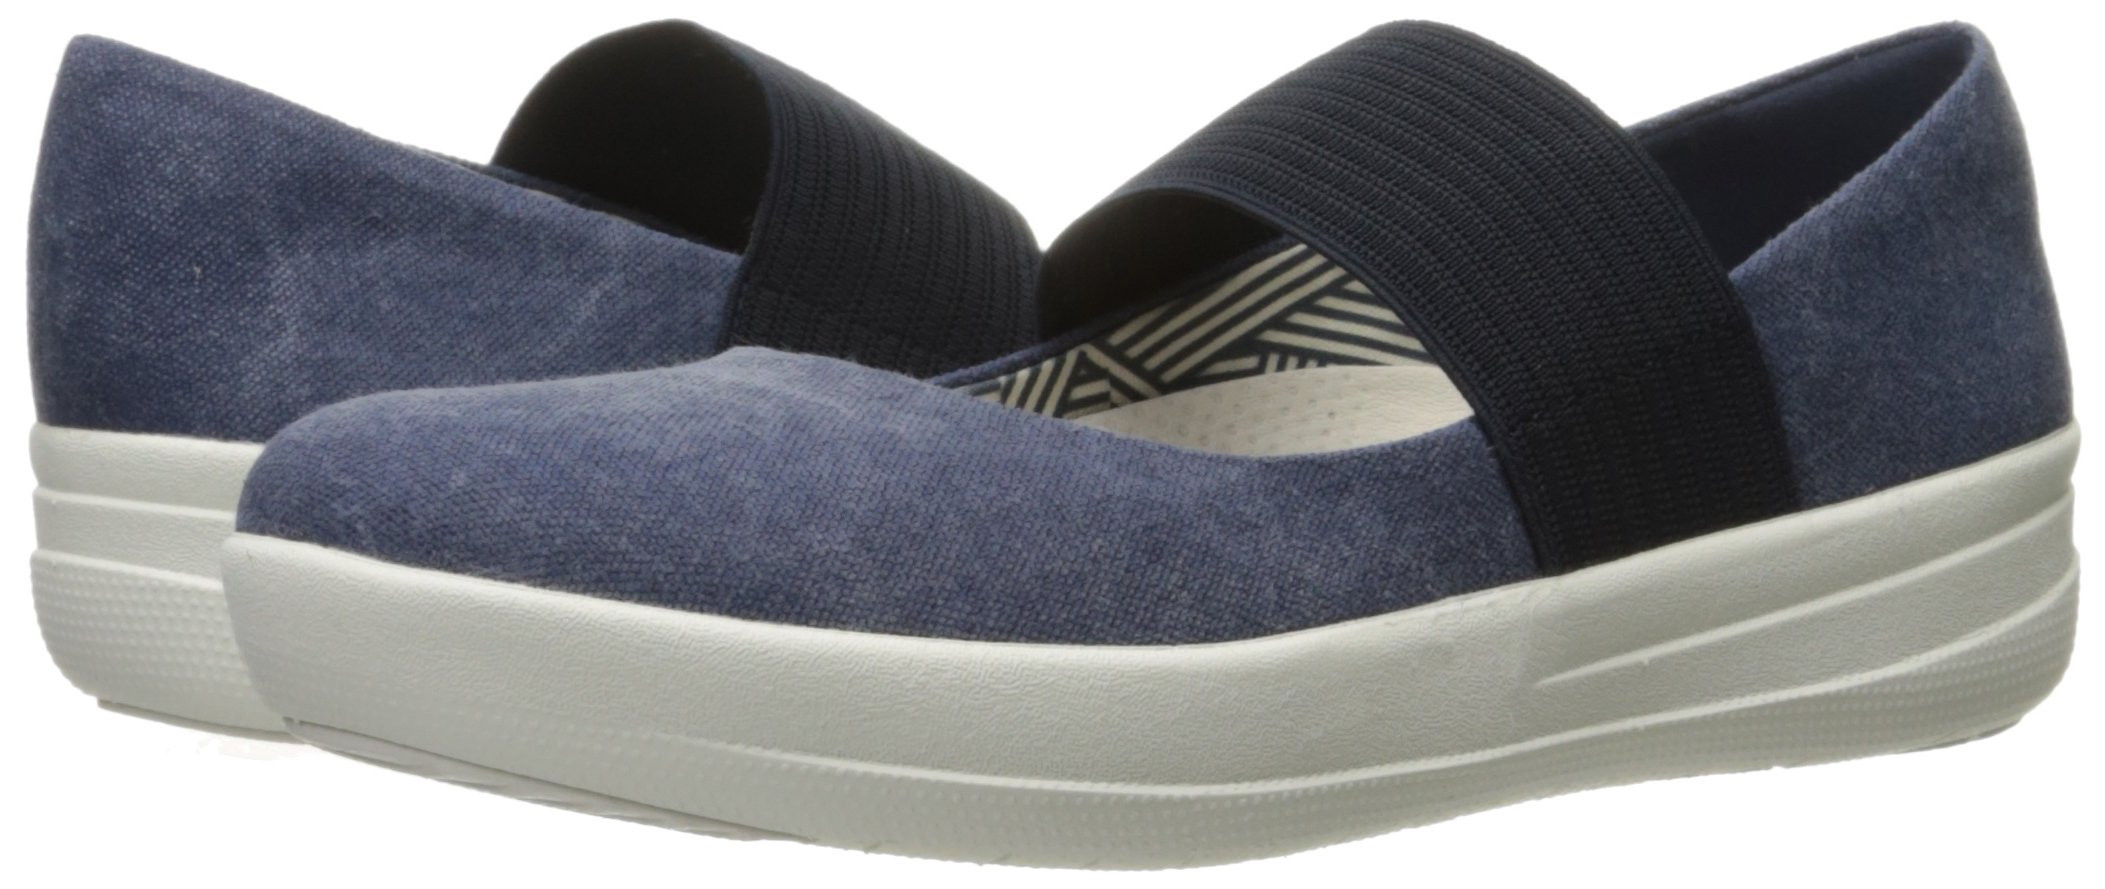 FitFlop Women's F-Sporty Mary Jane Flat, Midnight Navy, 6.5 M US by FitFlop (Image #6)